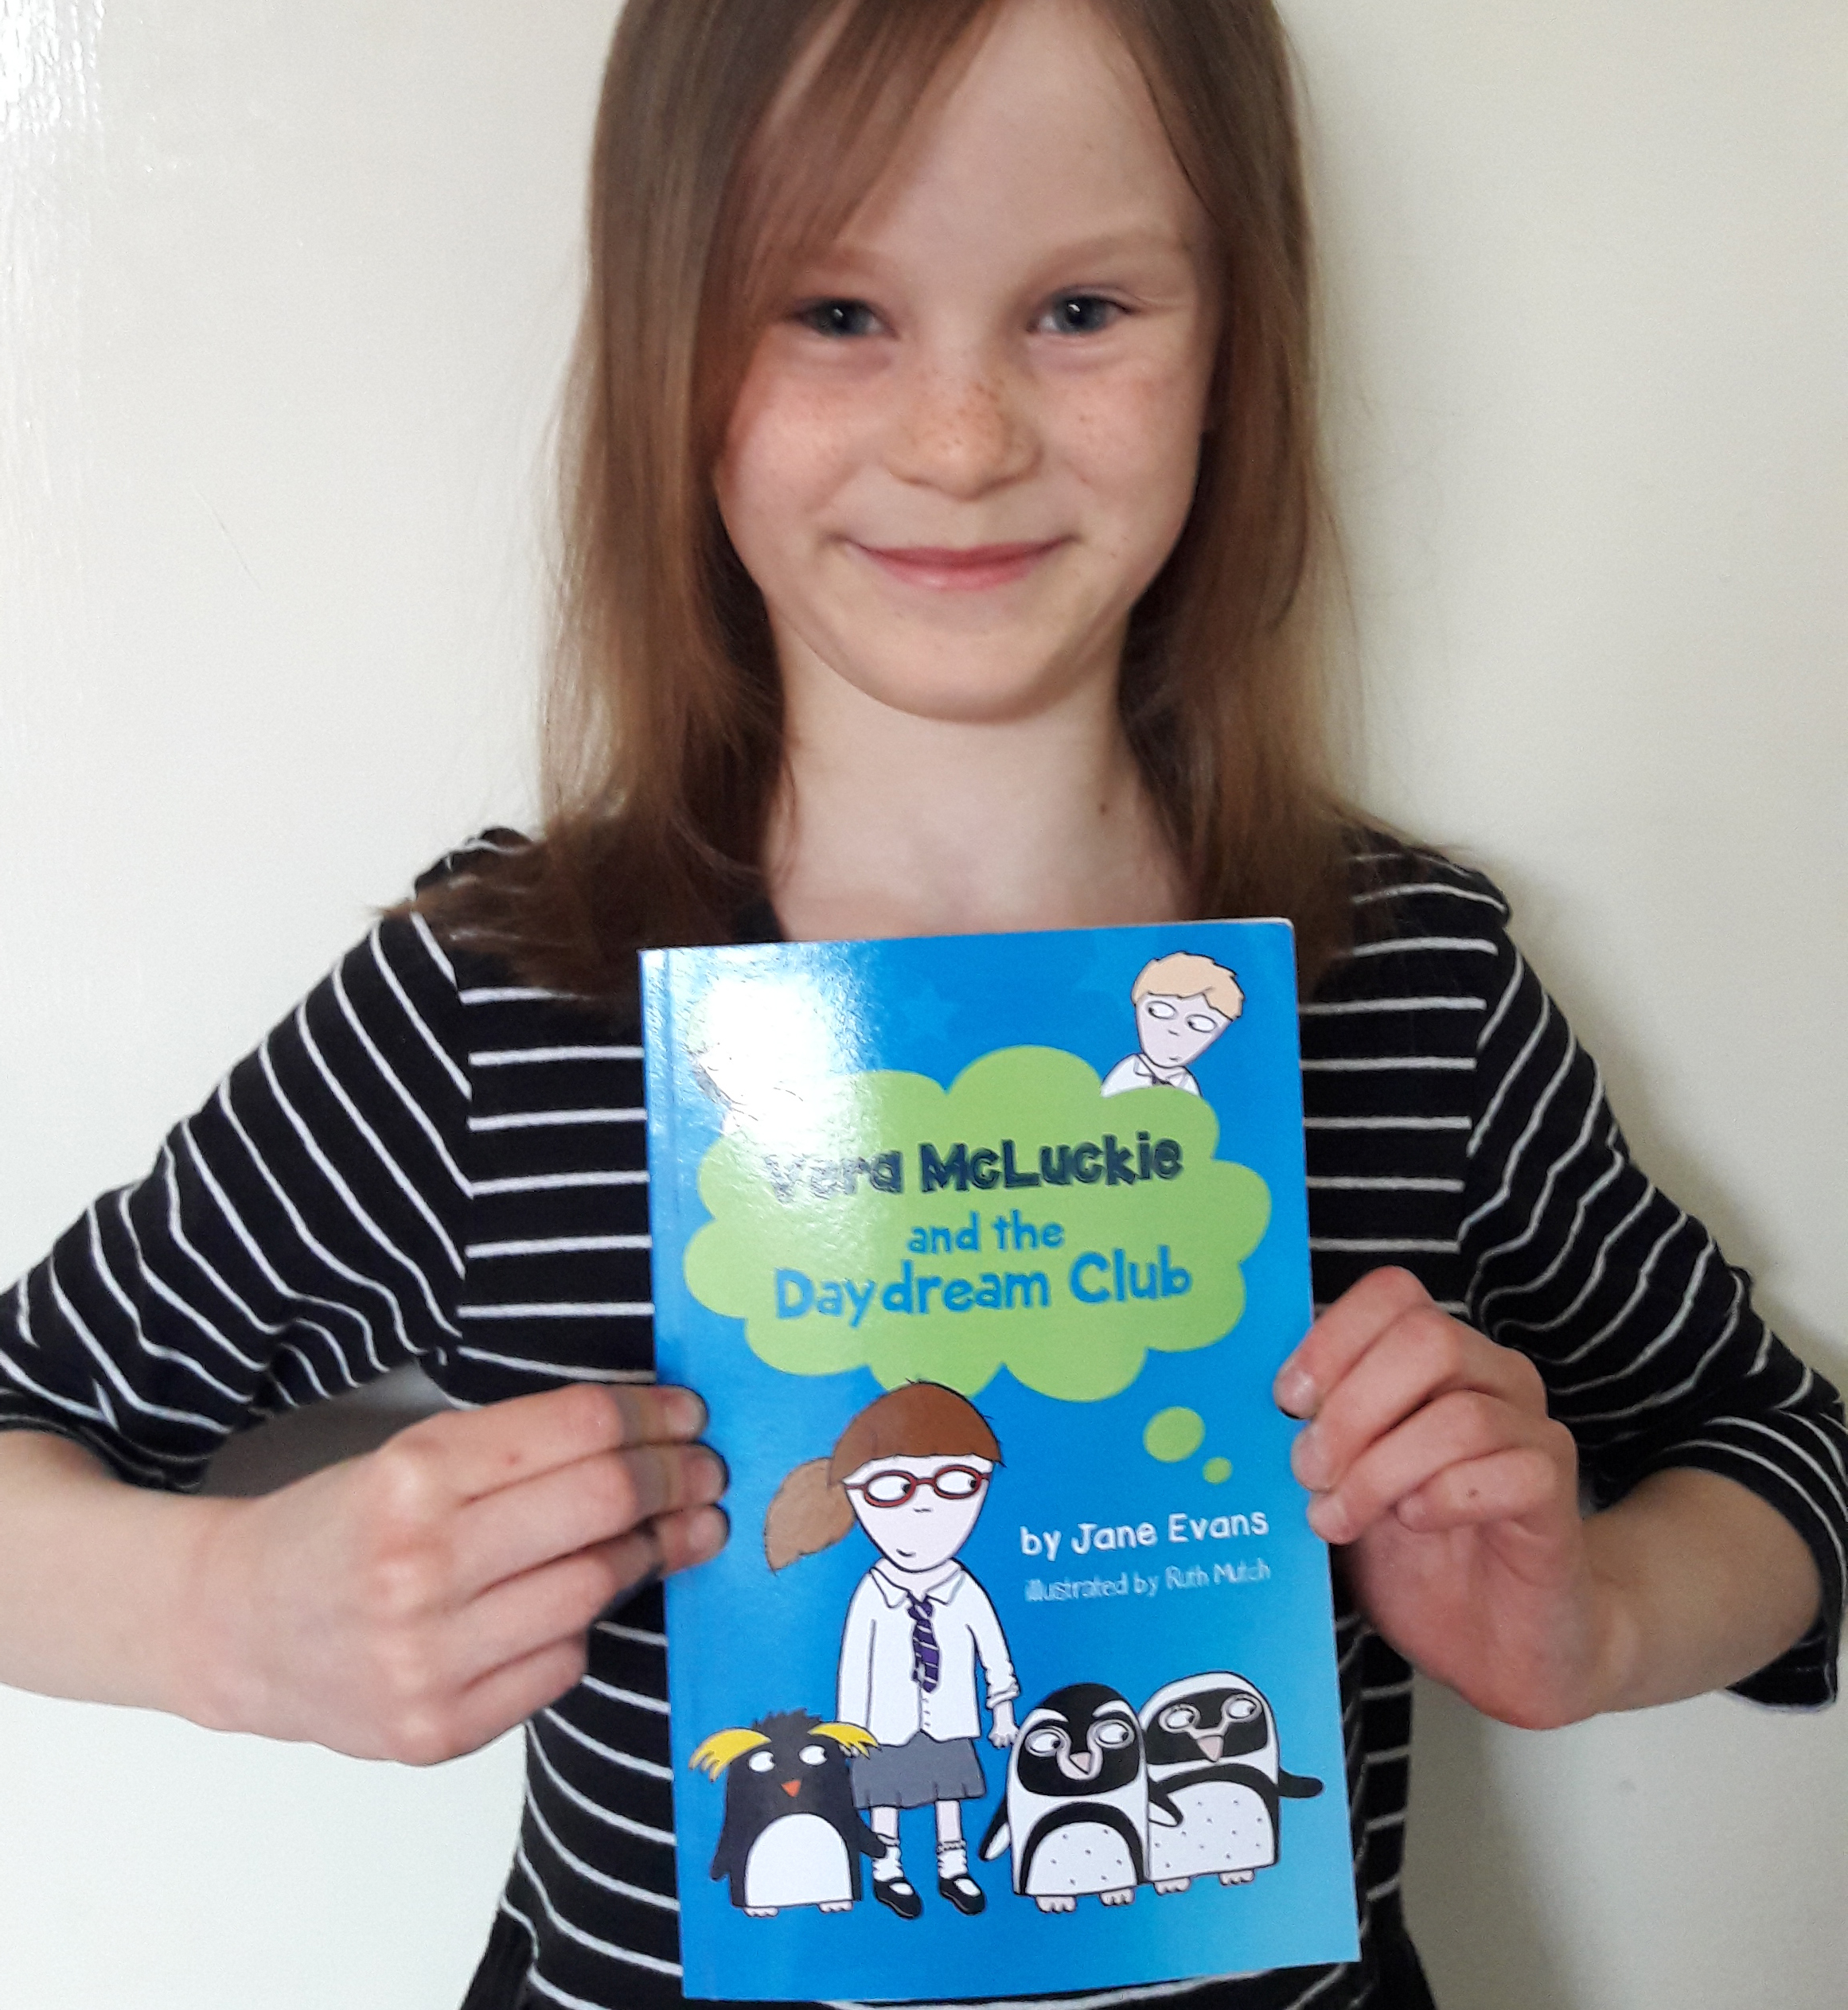 May 2017:  Anna Carlisle - who goes to school at Hill View Primary, Banbury, UK - was lucky enough to claim the last main prize to help the illustrator choose the 'hidden object' in the next Vera McLuckie story. We'll use the hidden object for another competition like this one.